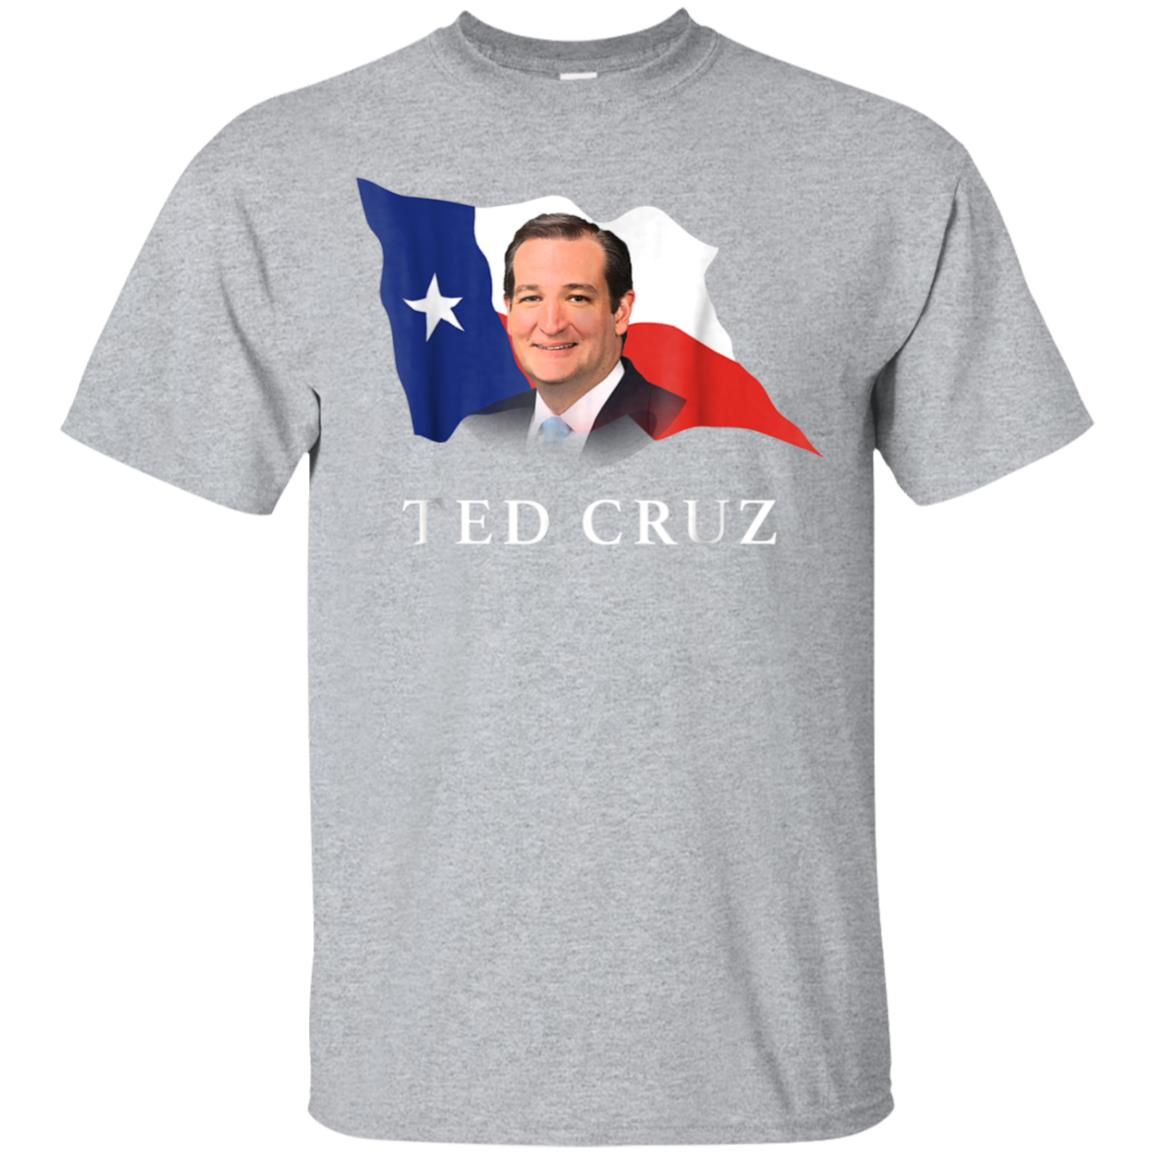 Ted Cruz for Senate 2018 Campaign T-Shirt 99promocode